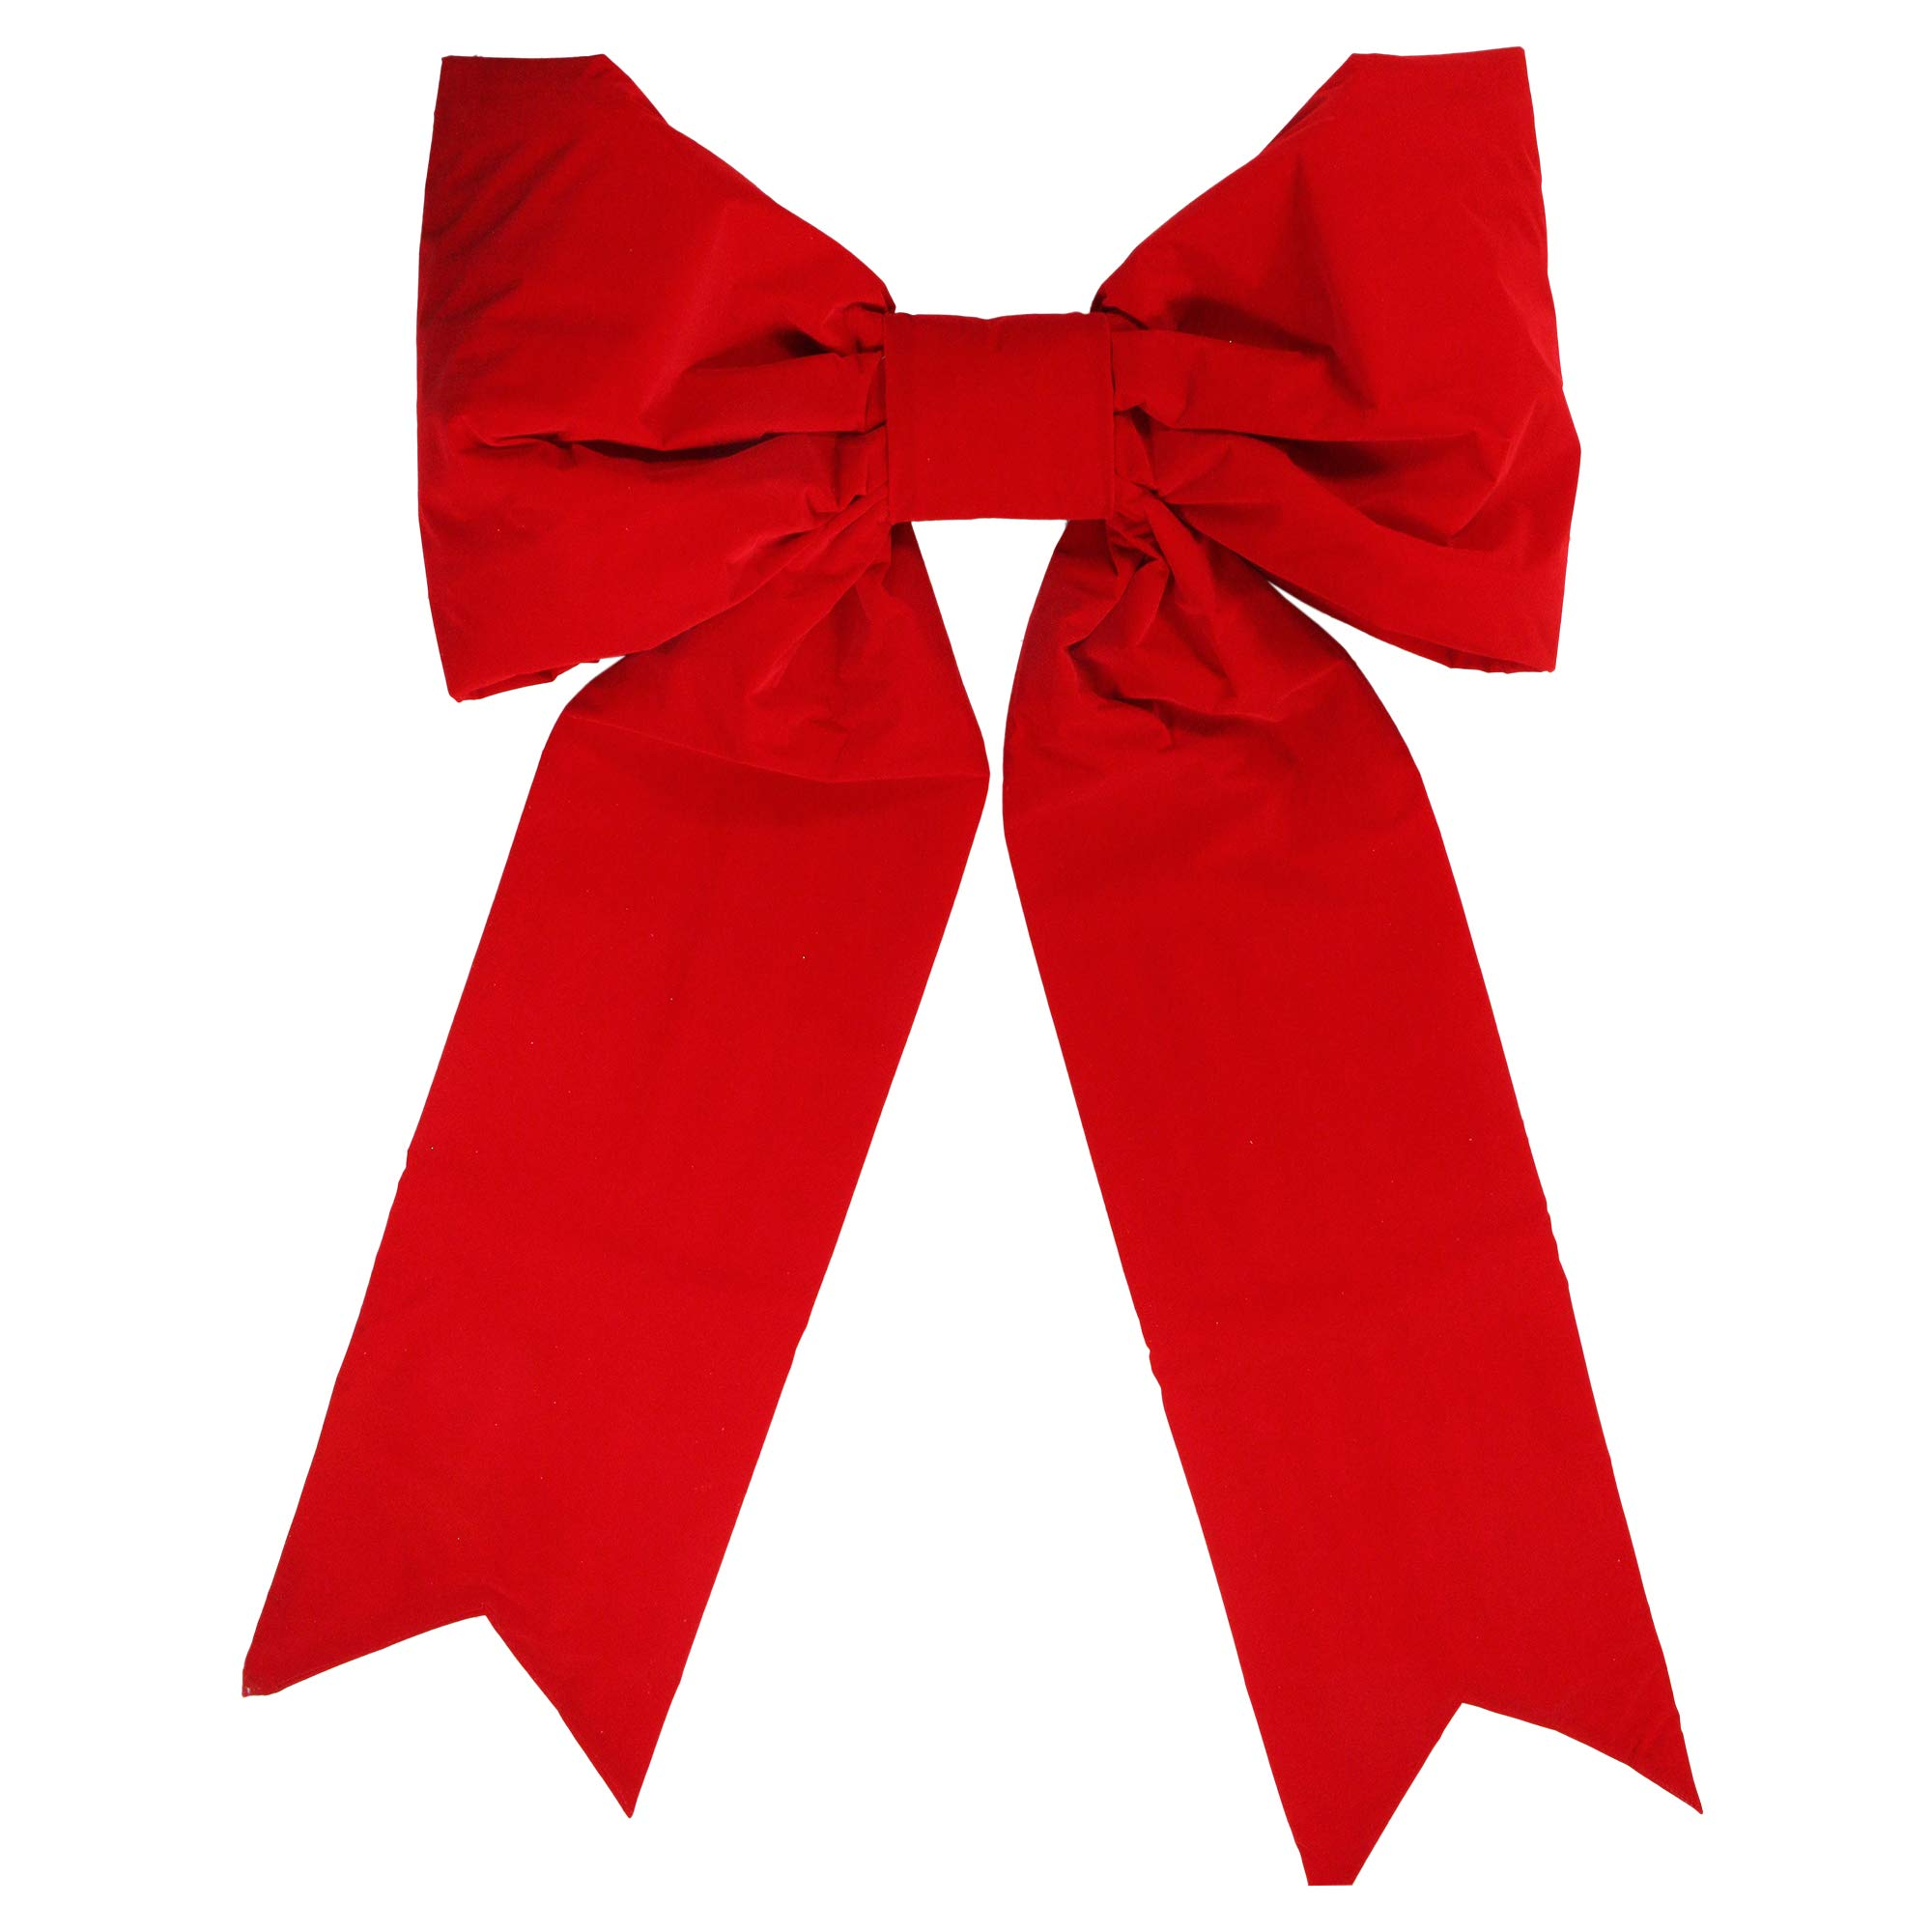 Dyno 34'' x 48'' Commercial 2-Loop Red Velveteen Christmas Bow Decoration